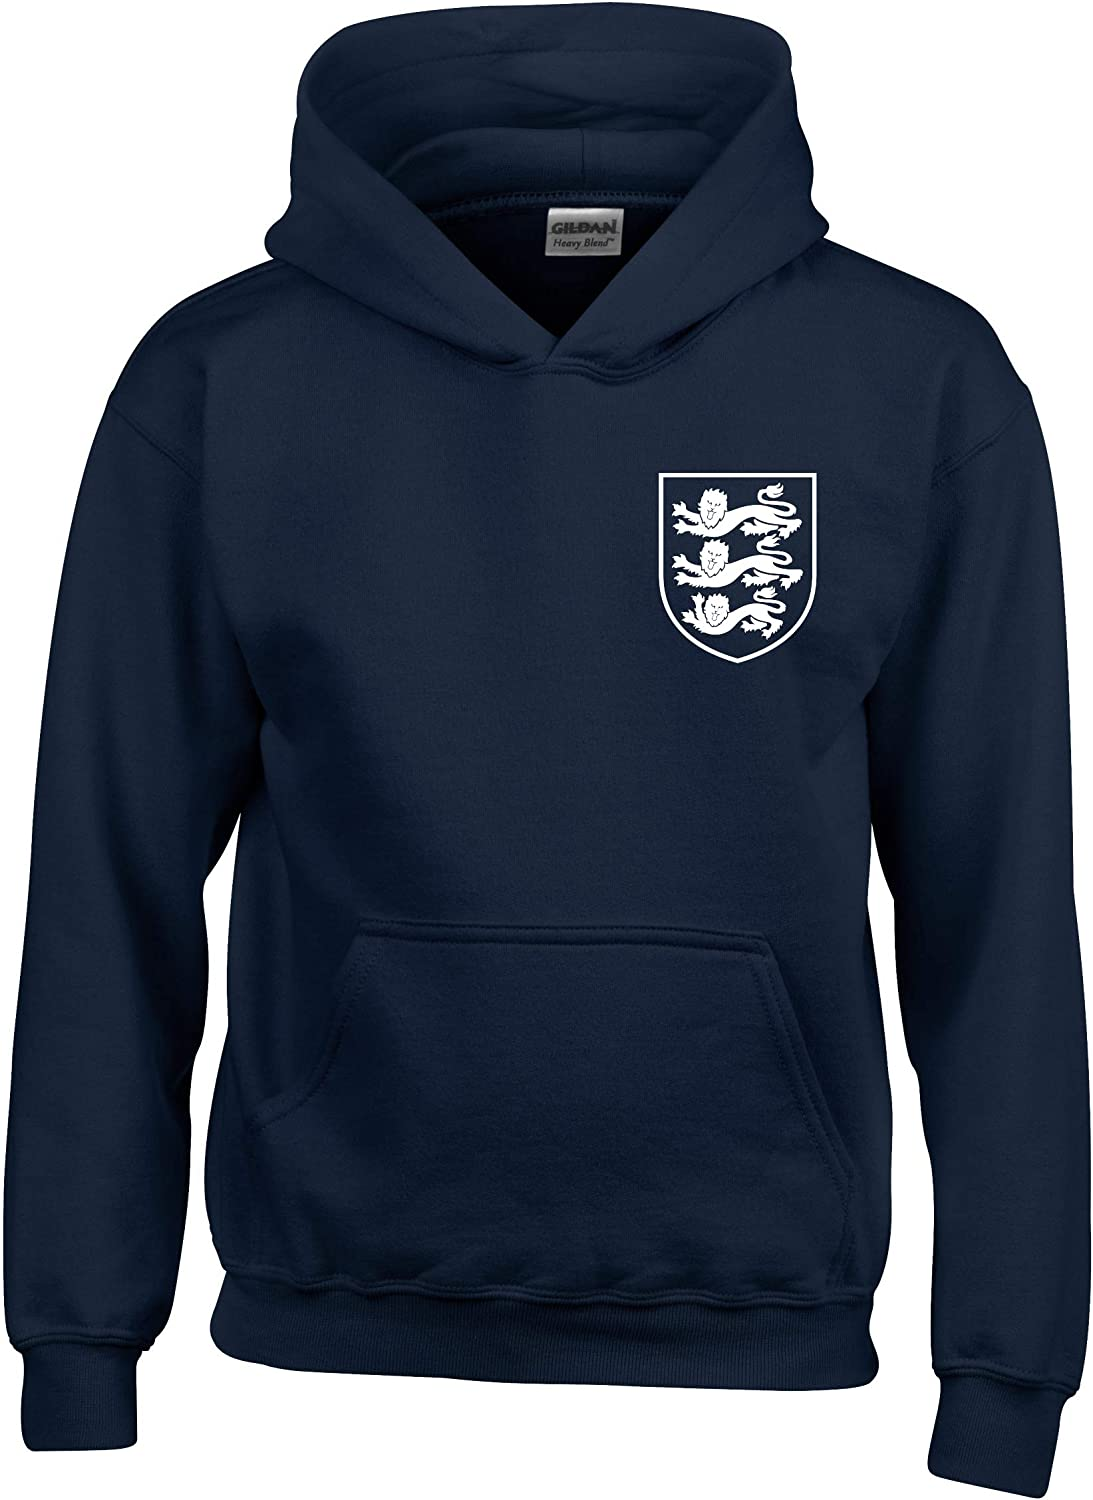 3 Lions Small Crest England Football World Cup 2018 Hoodie Kids Navy//White Age 7-8